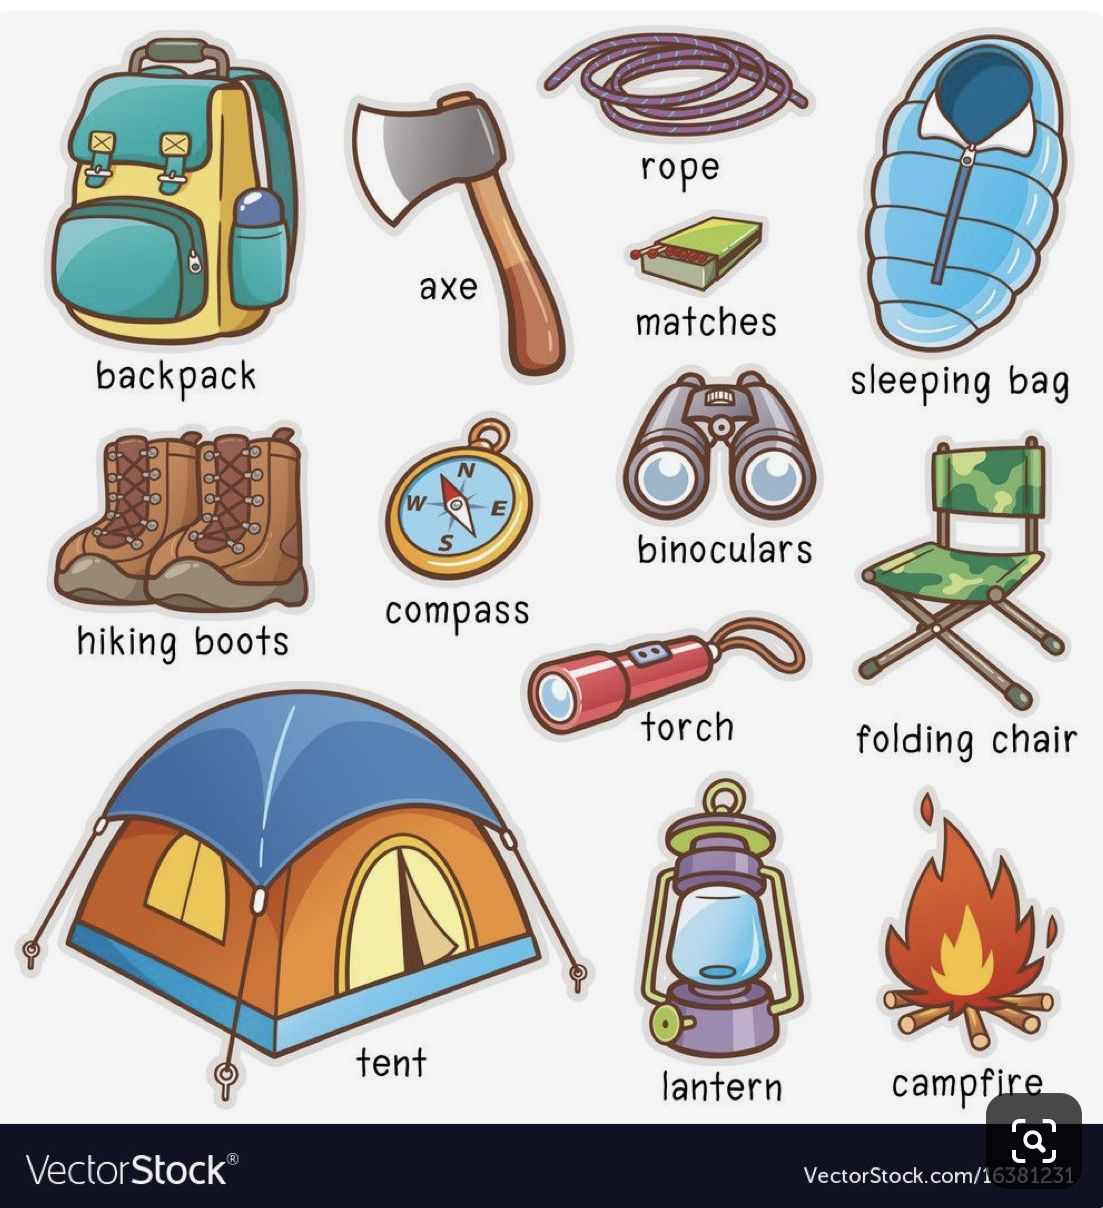 Pin By Anna On Camping And Things Picnic And Food Painted